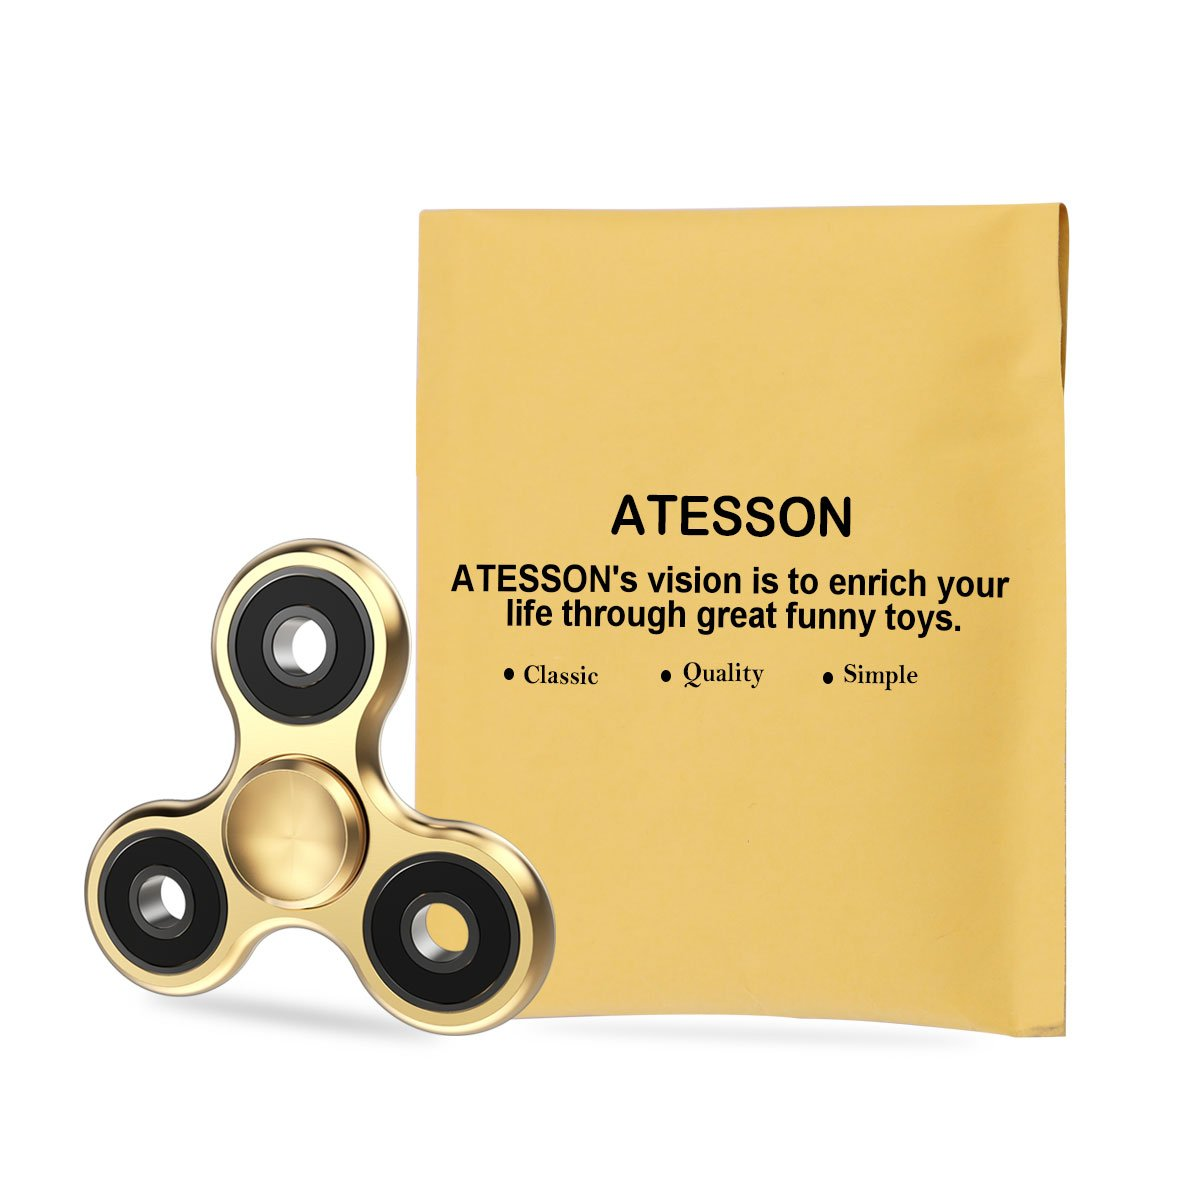 ATESSON Fidget Spinner Toy 4-10 Min Spins Ultra Durable Stainless Steel Bearing High Speed Precision Metal Material Hand Spinner Focus Anxiety Stress Relief Boredom Killing Time Toys - Silver by ATESSON (Image #8)